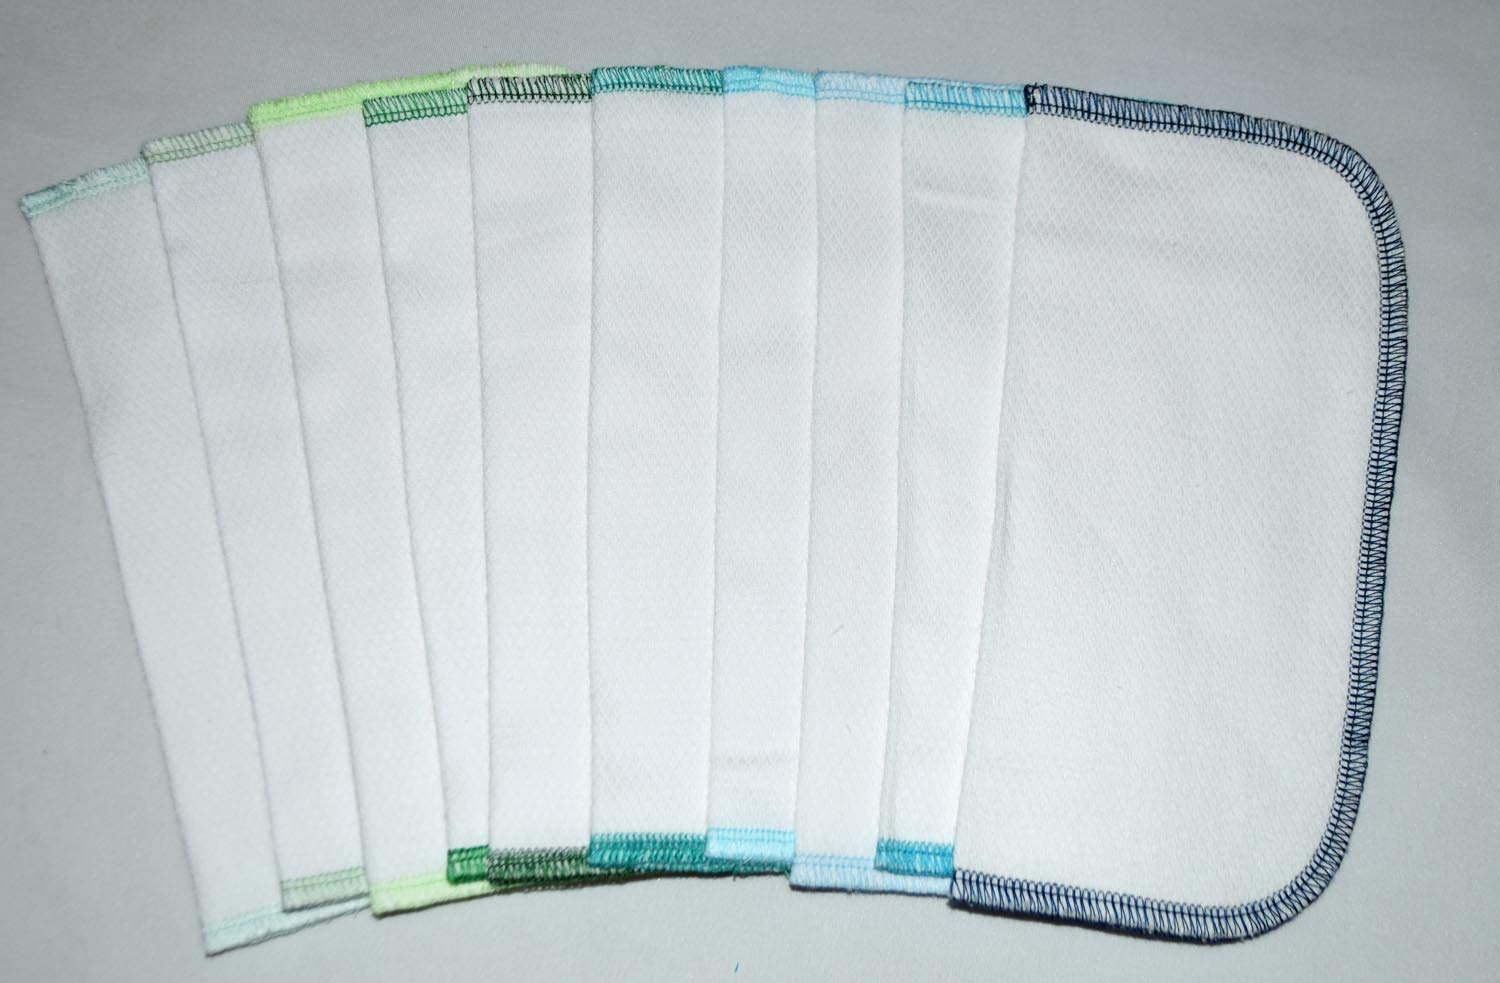 2 Ply 8x8 Inches White Cotton Birdseye Little Wipes Set of 10 Assorted Blues and Greens 61MIvO5guoL